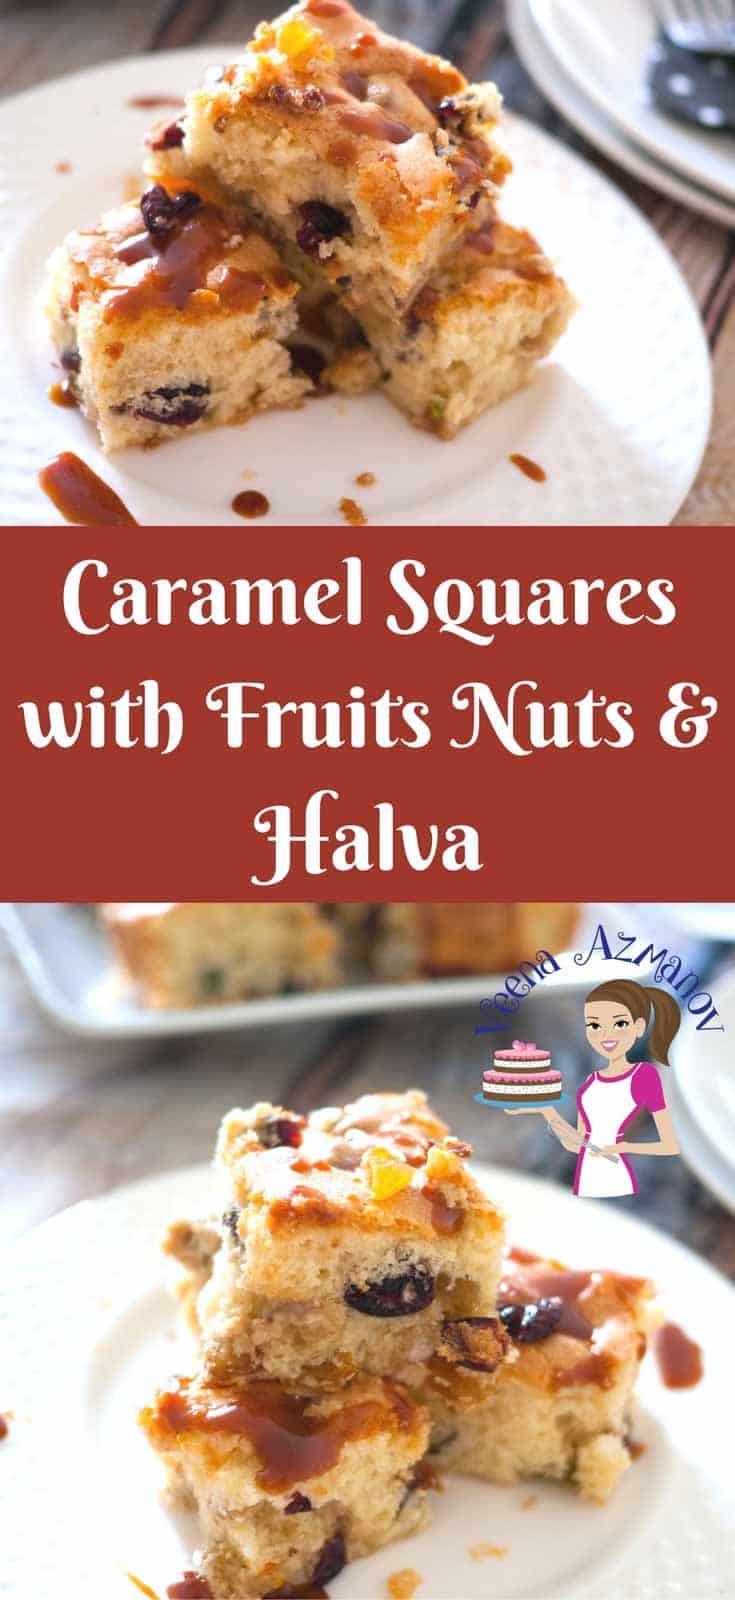 These Caramel Squares with Fruit Nuts and Halva recipe are a perfect tea time cake that absolutely melts in your mouth. The delicious fruit nuts is enhanced with the sweetness of the halva. The caramel topping just takes it to a whole new experience. I'm very sure you will be adding this to you party favorites.